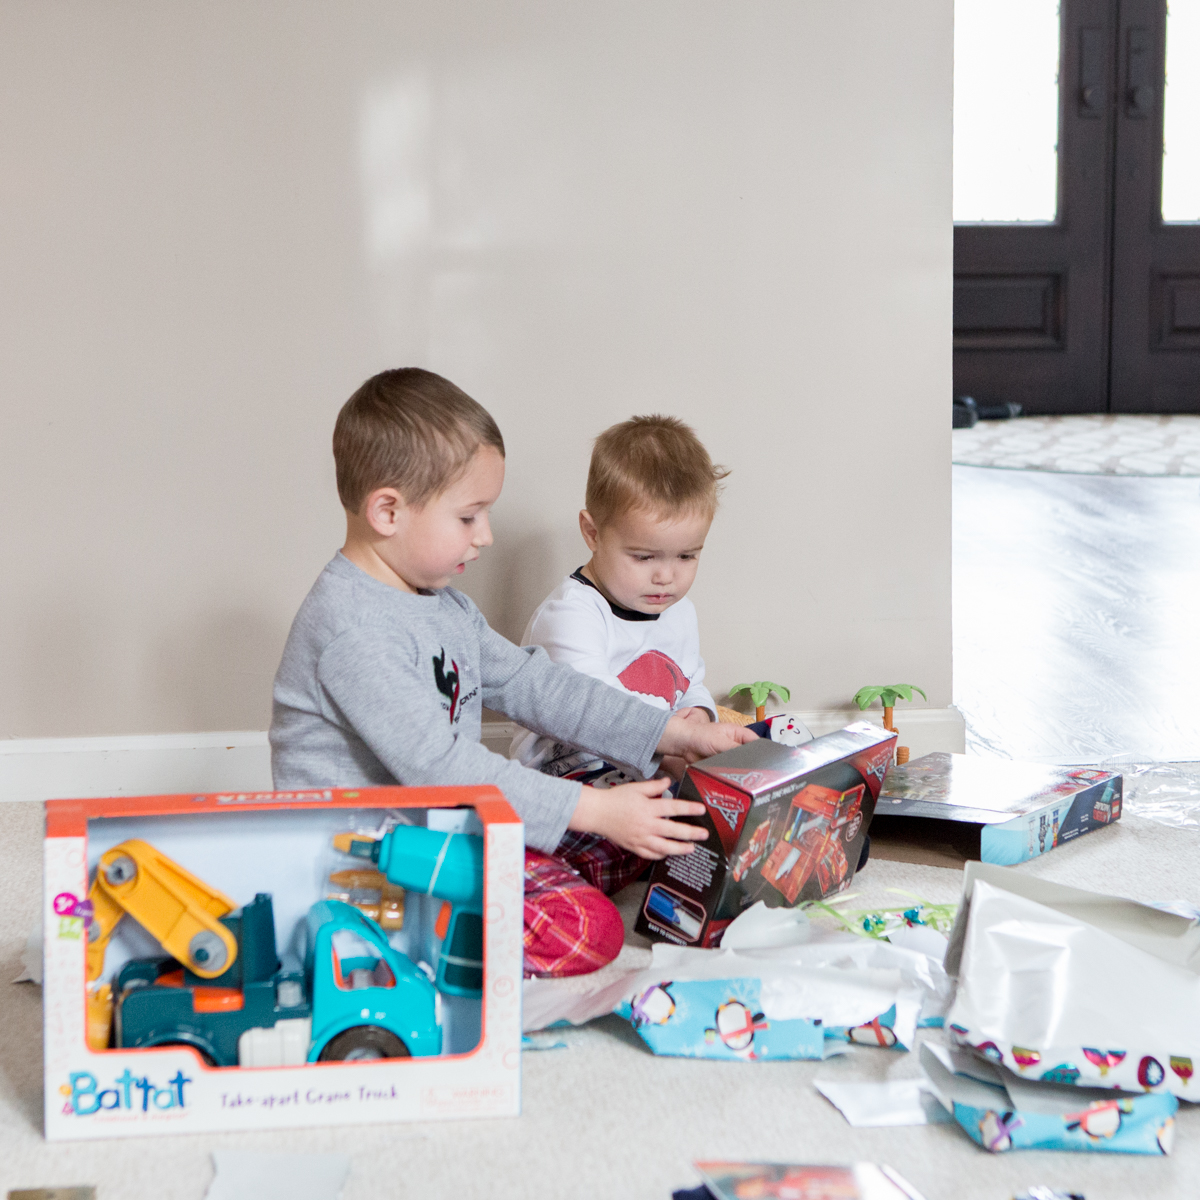 Photograph of young boy opening presents on Christmas morning